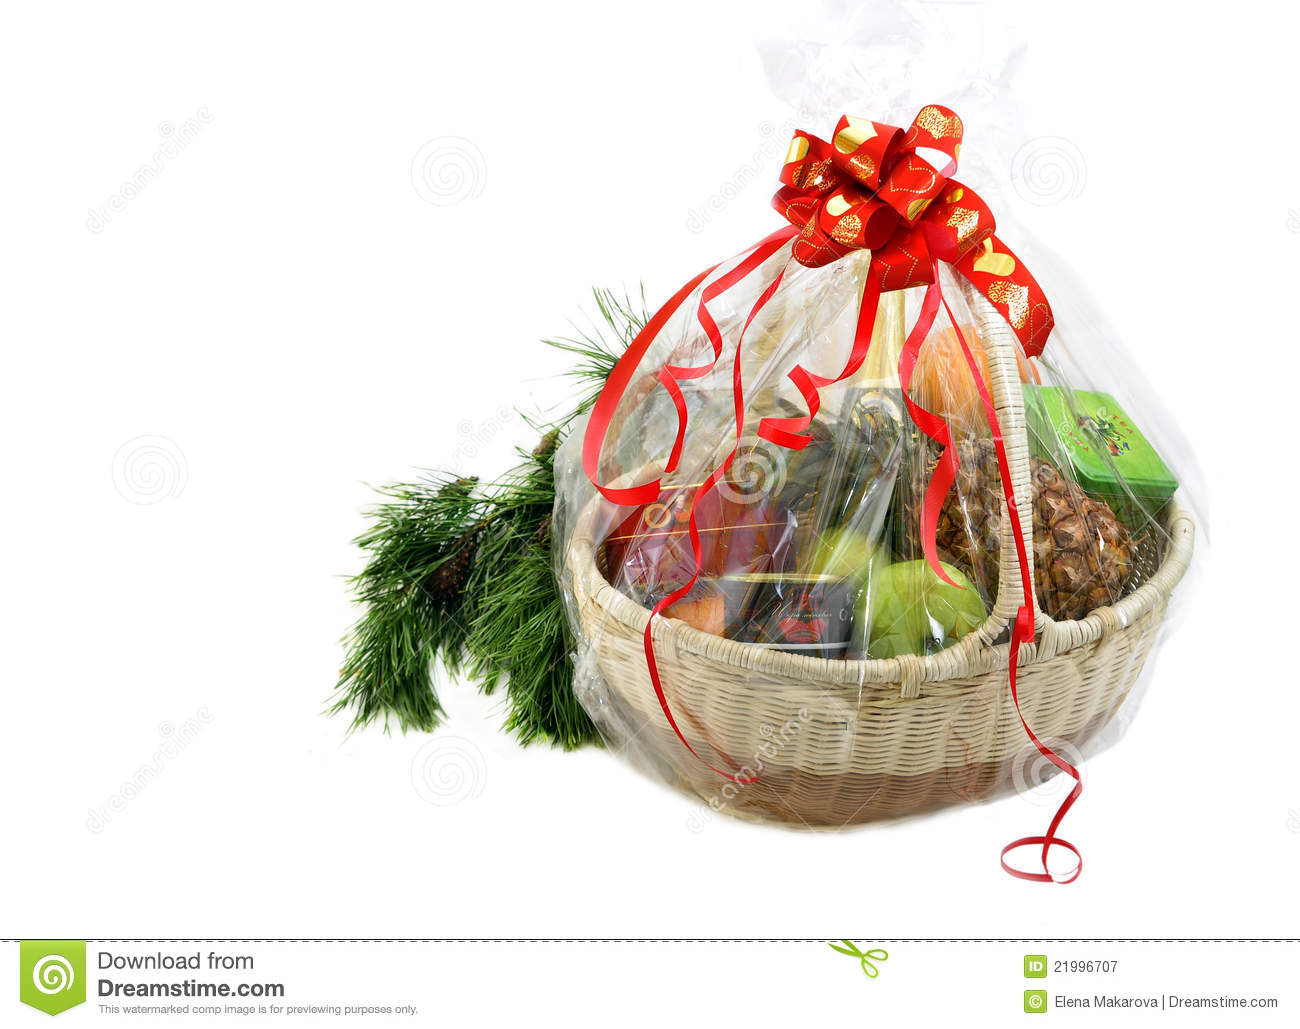 New Year Gift Basket And Pine Branch Stock Image - Image: 21996707